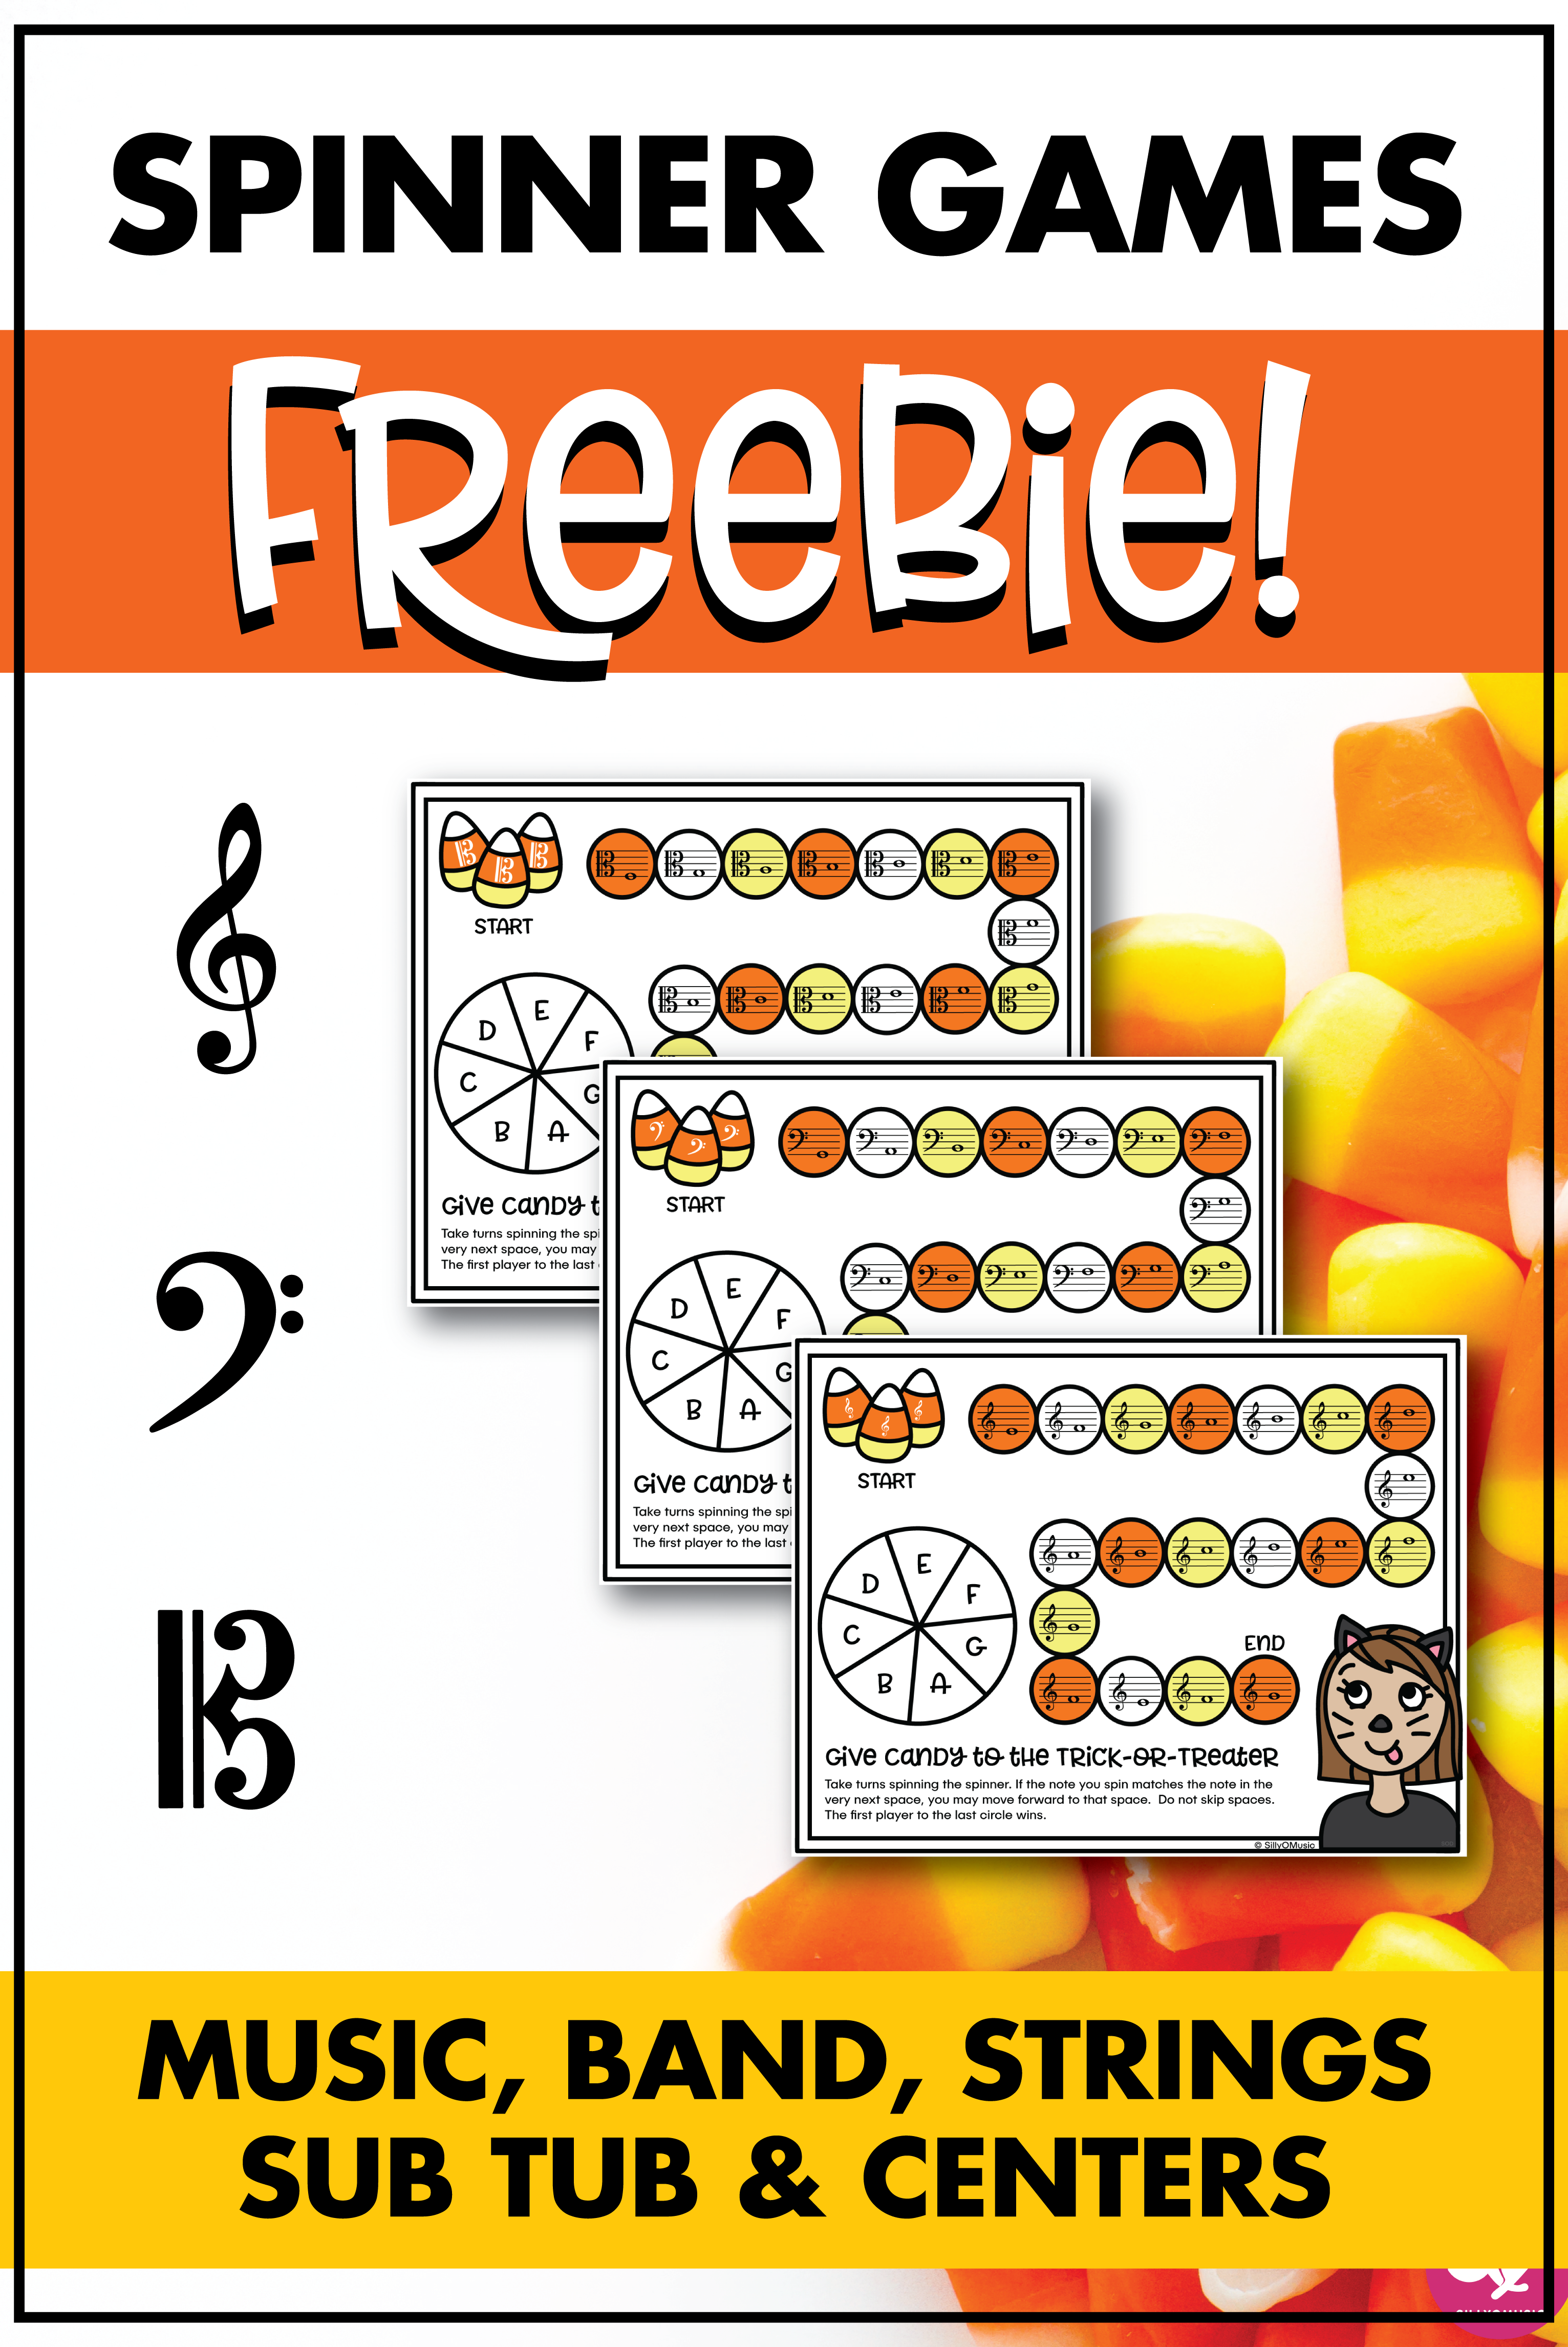 Halloween Music Free Spinner Board Games For 3 Clefs